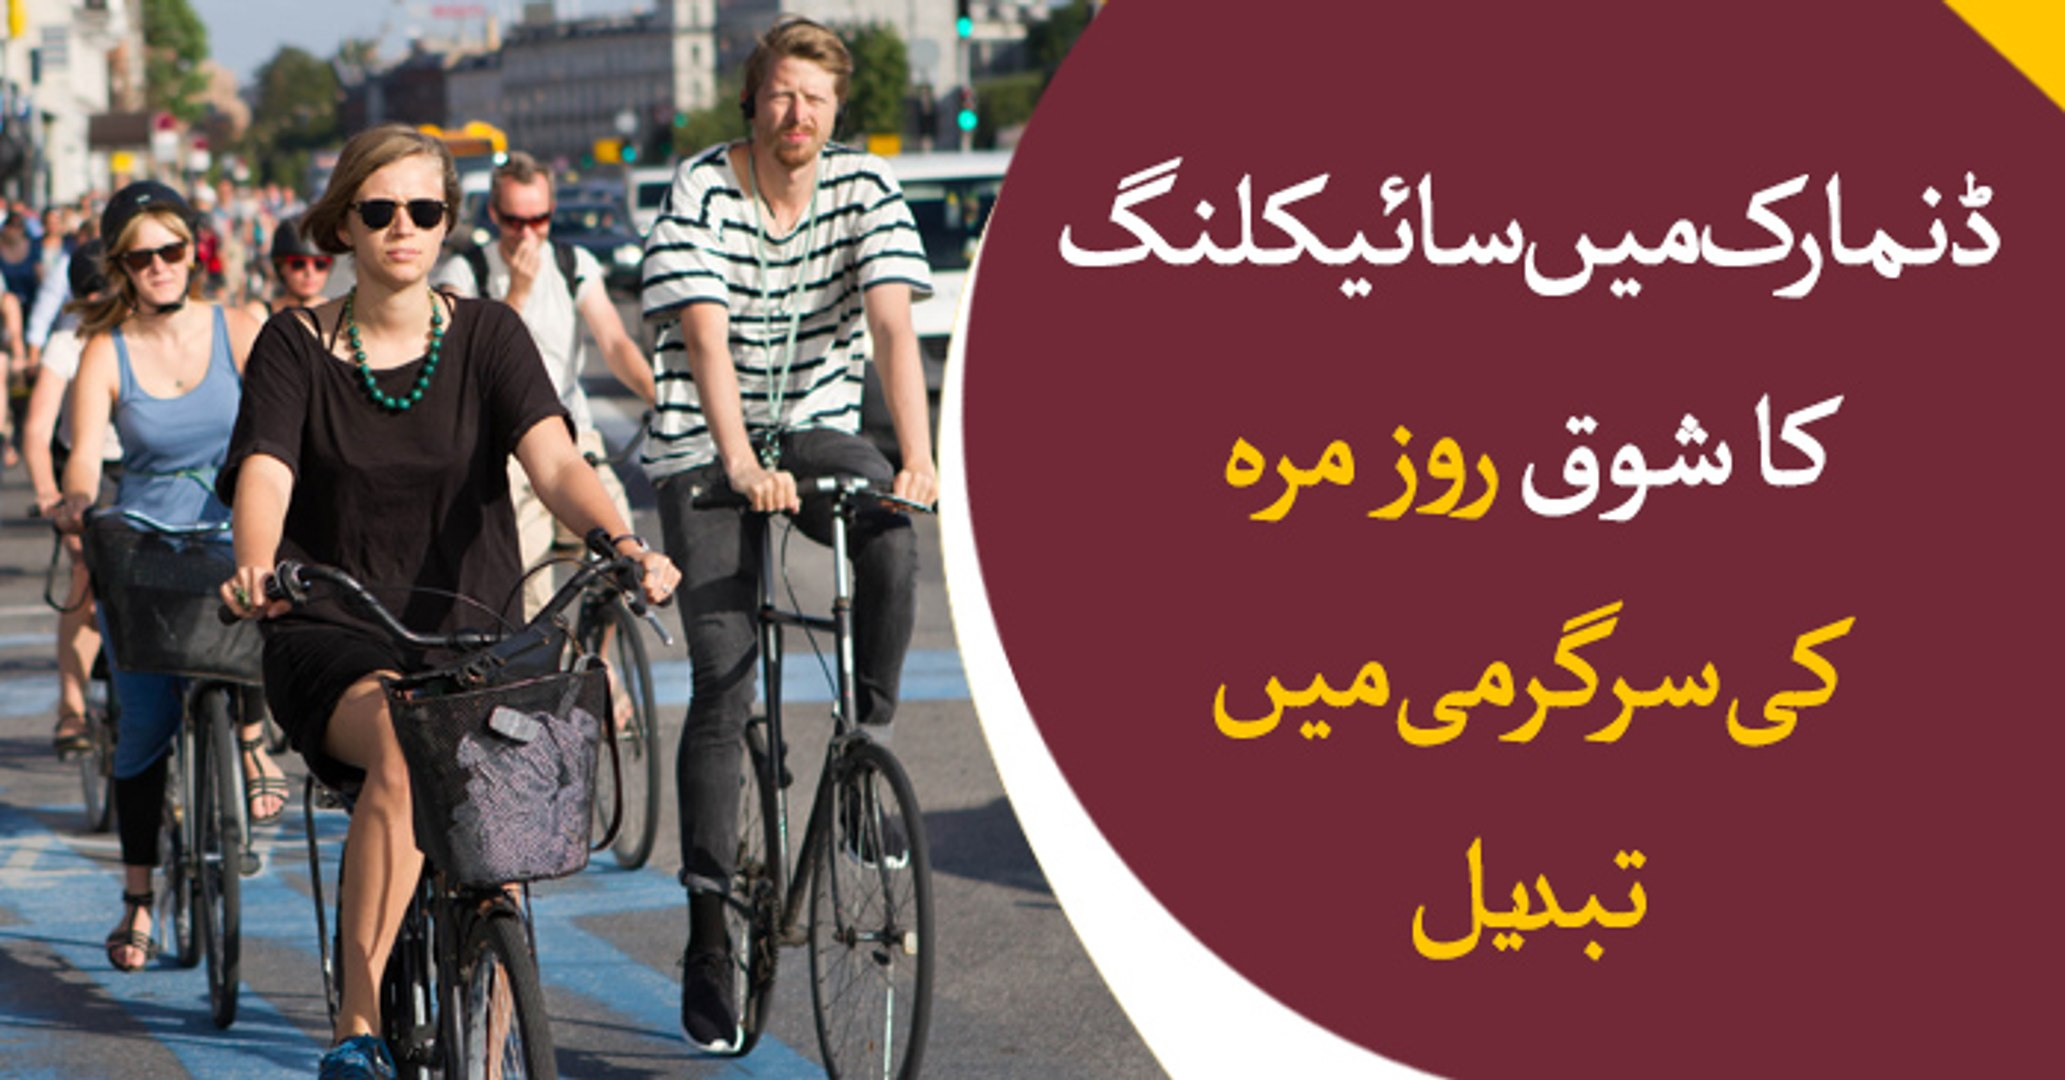 Cycling interest is converting in daily routine in Denmark